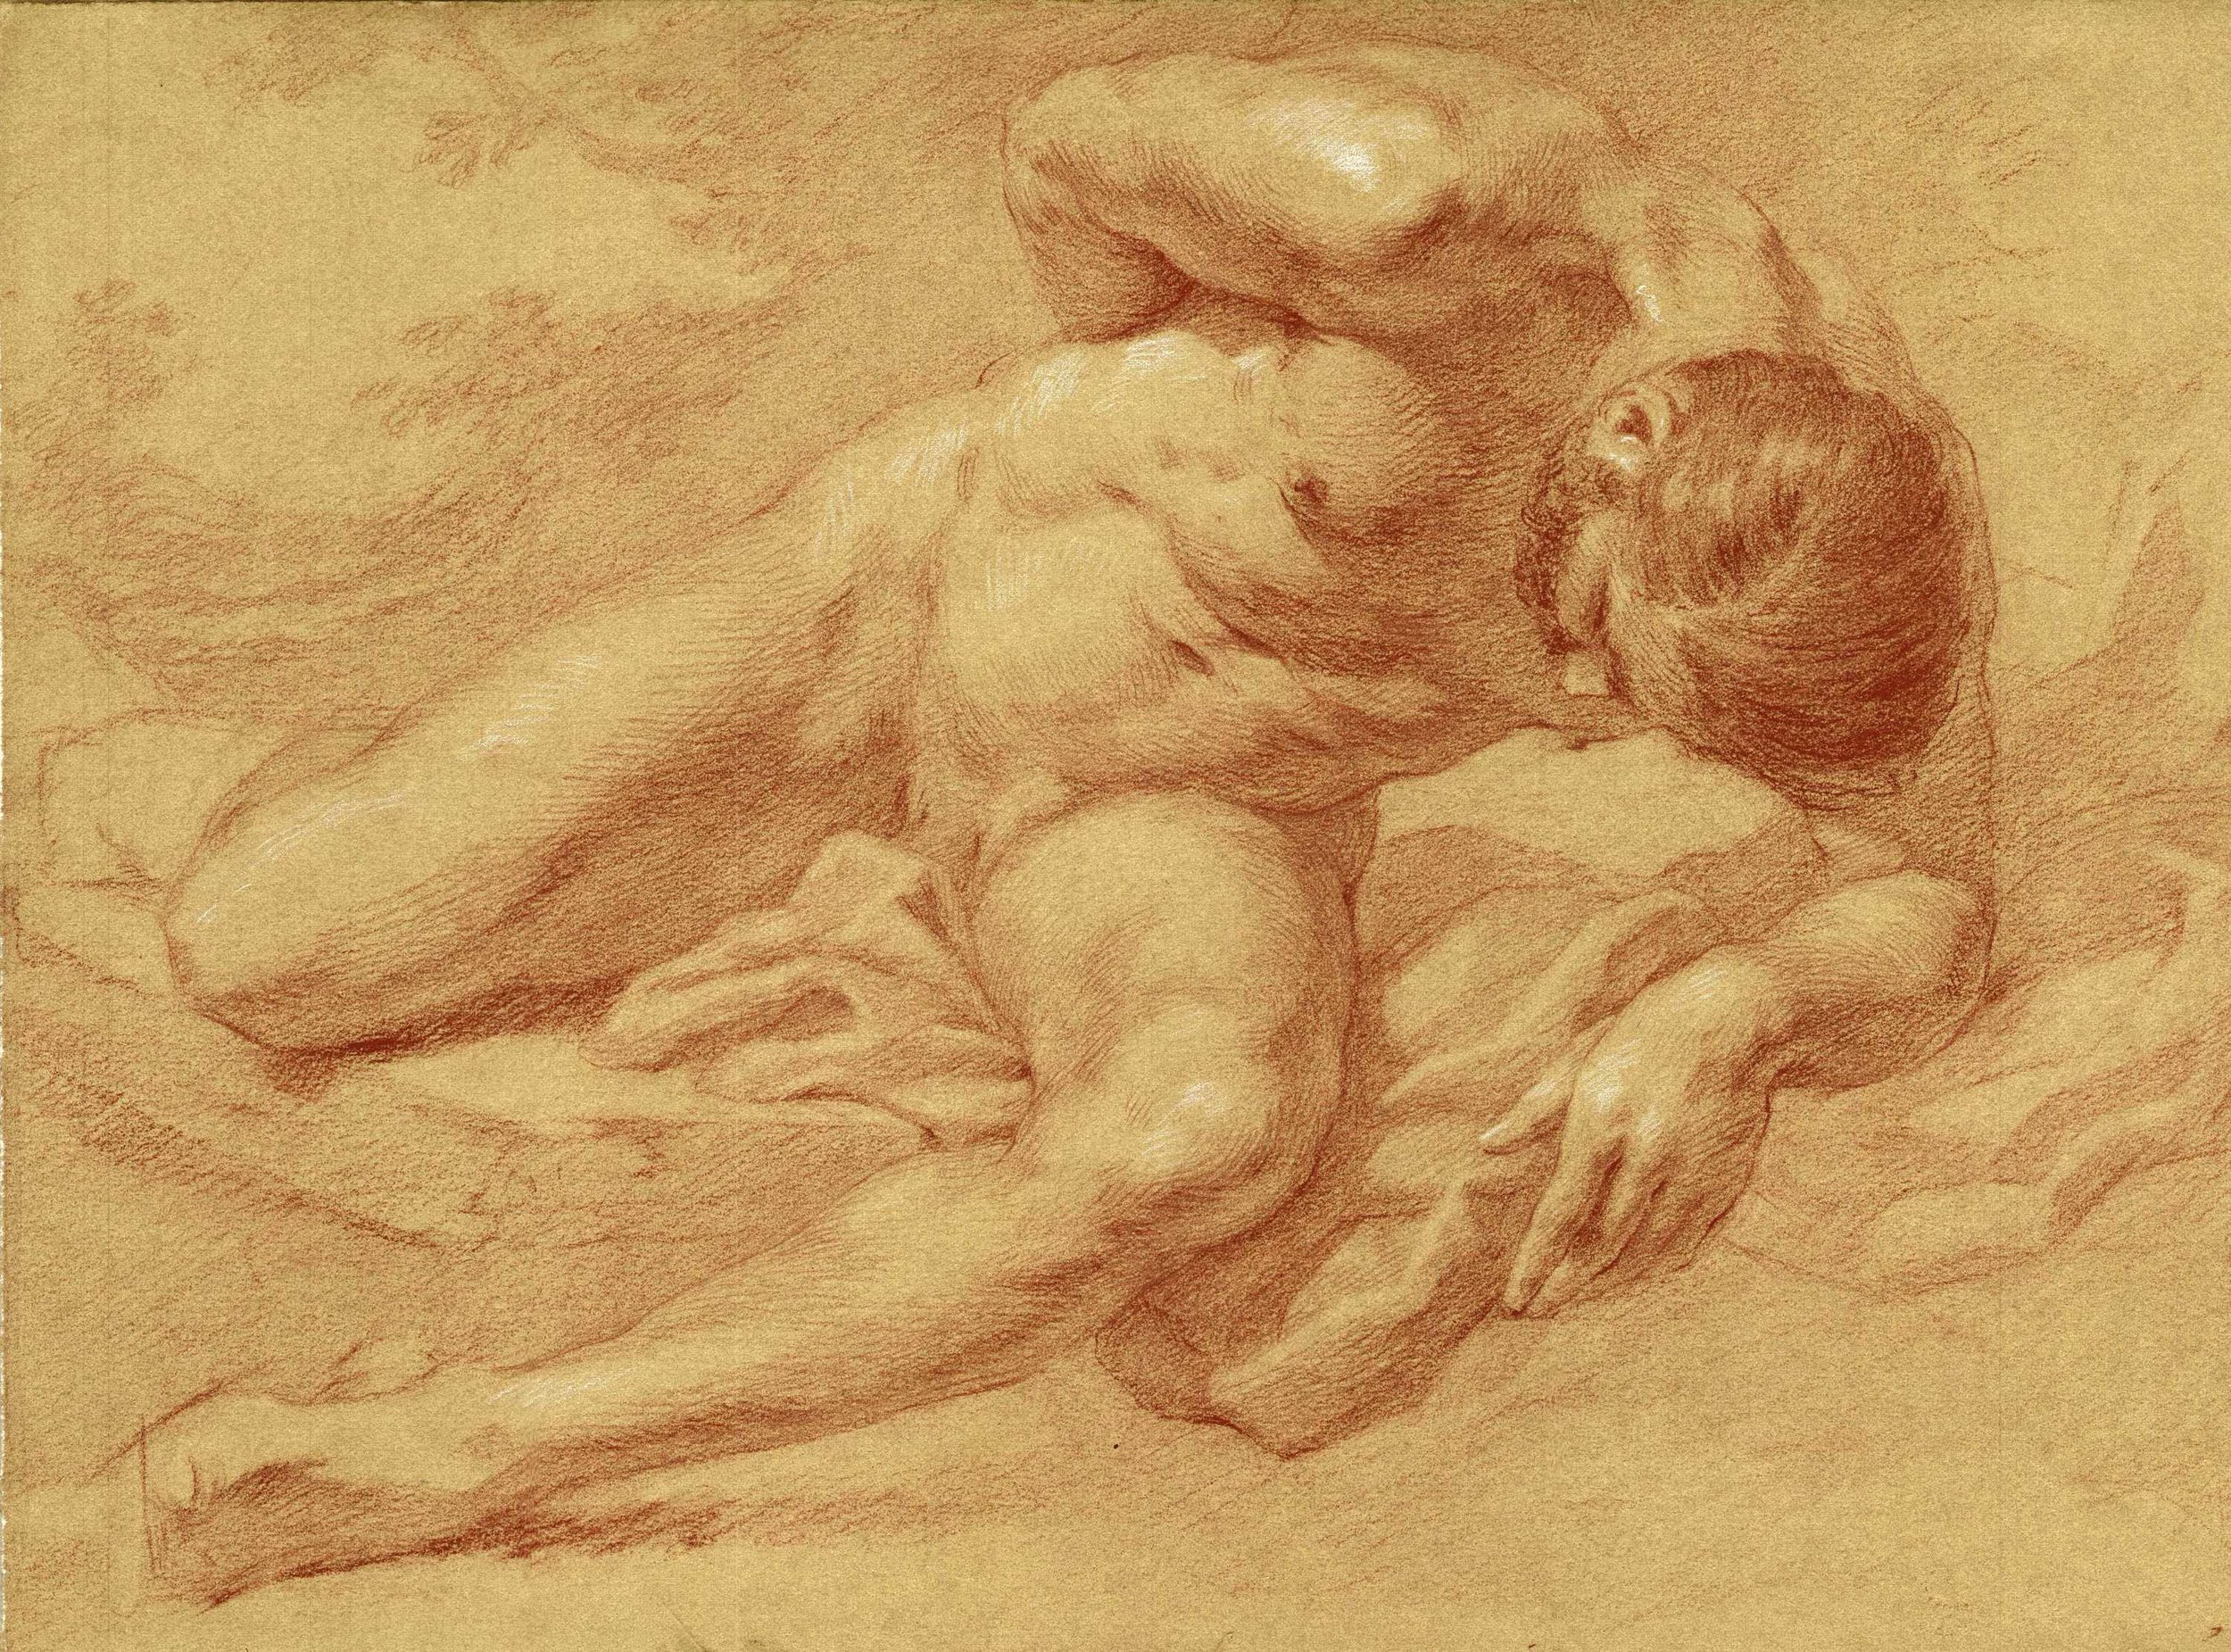 Male Nude  by Anthony Baus, 2018, red chalk on paper, $3,000